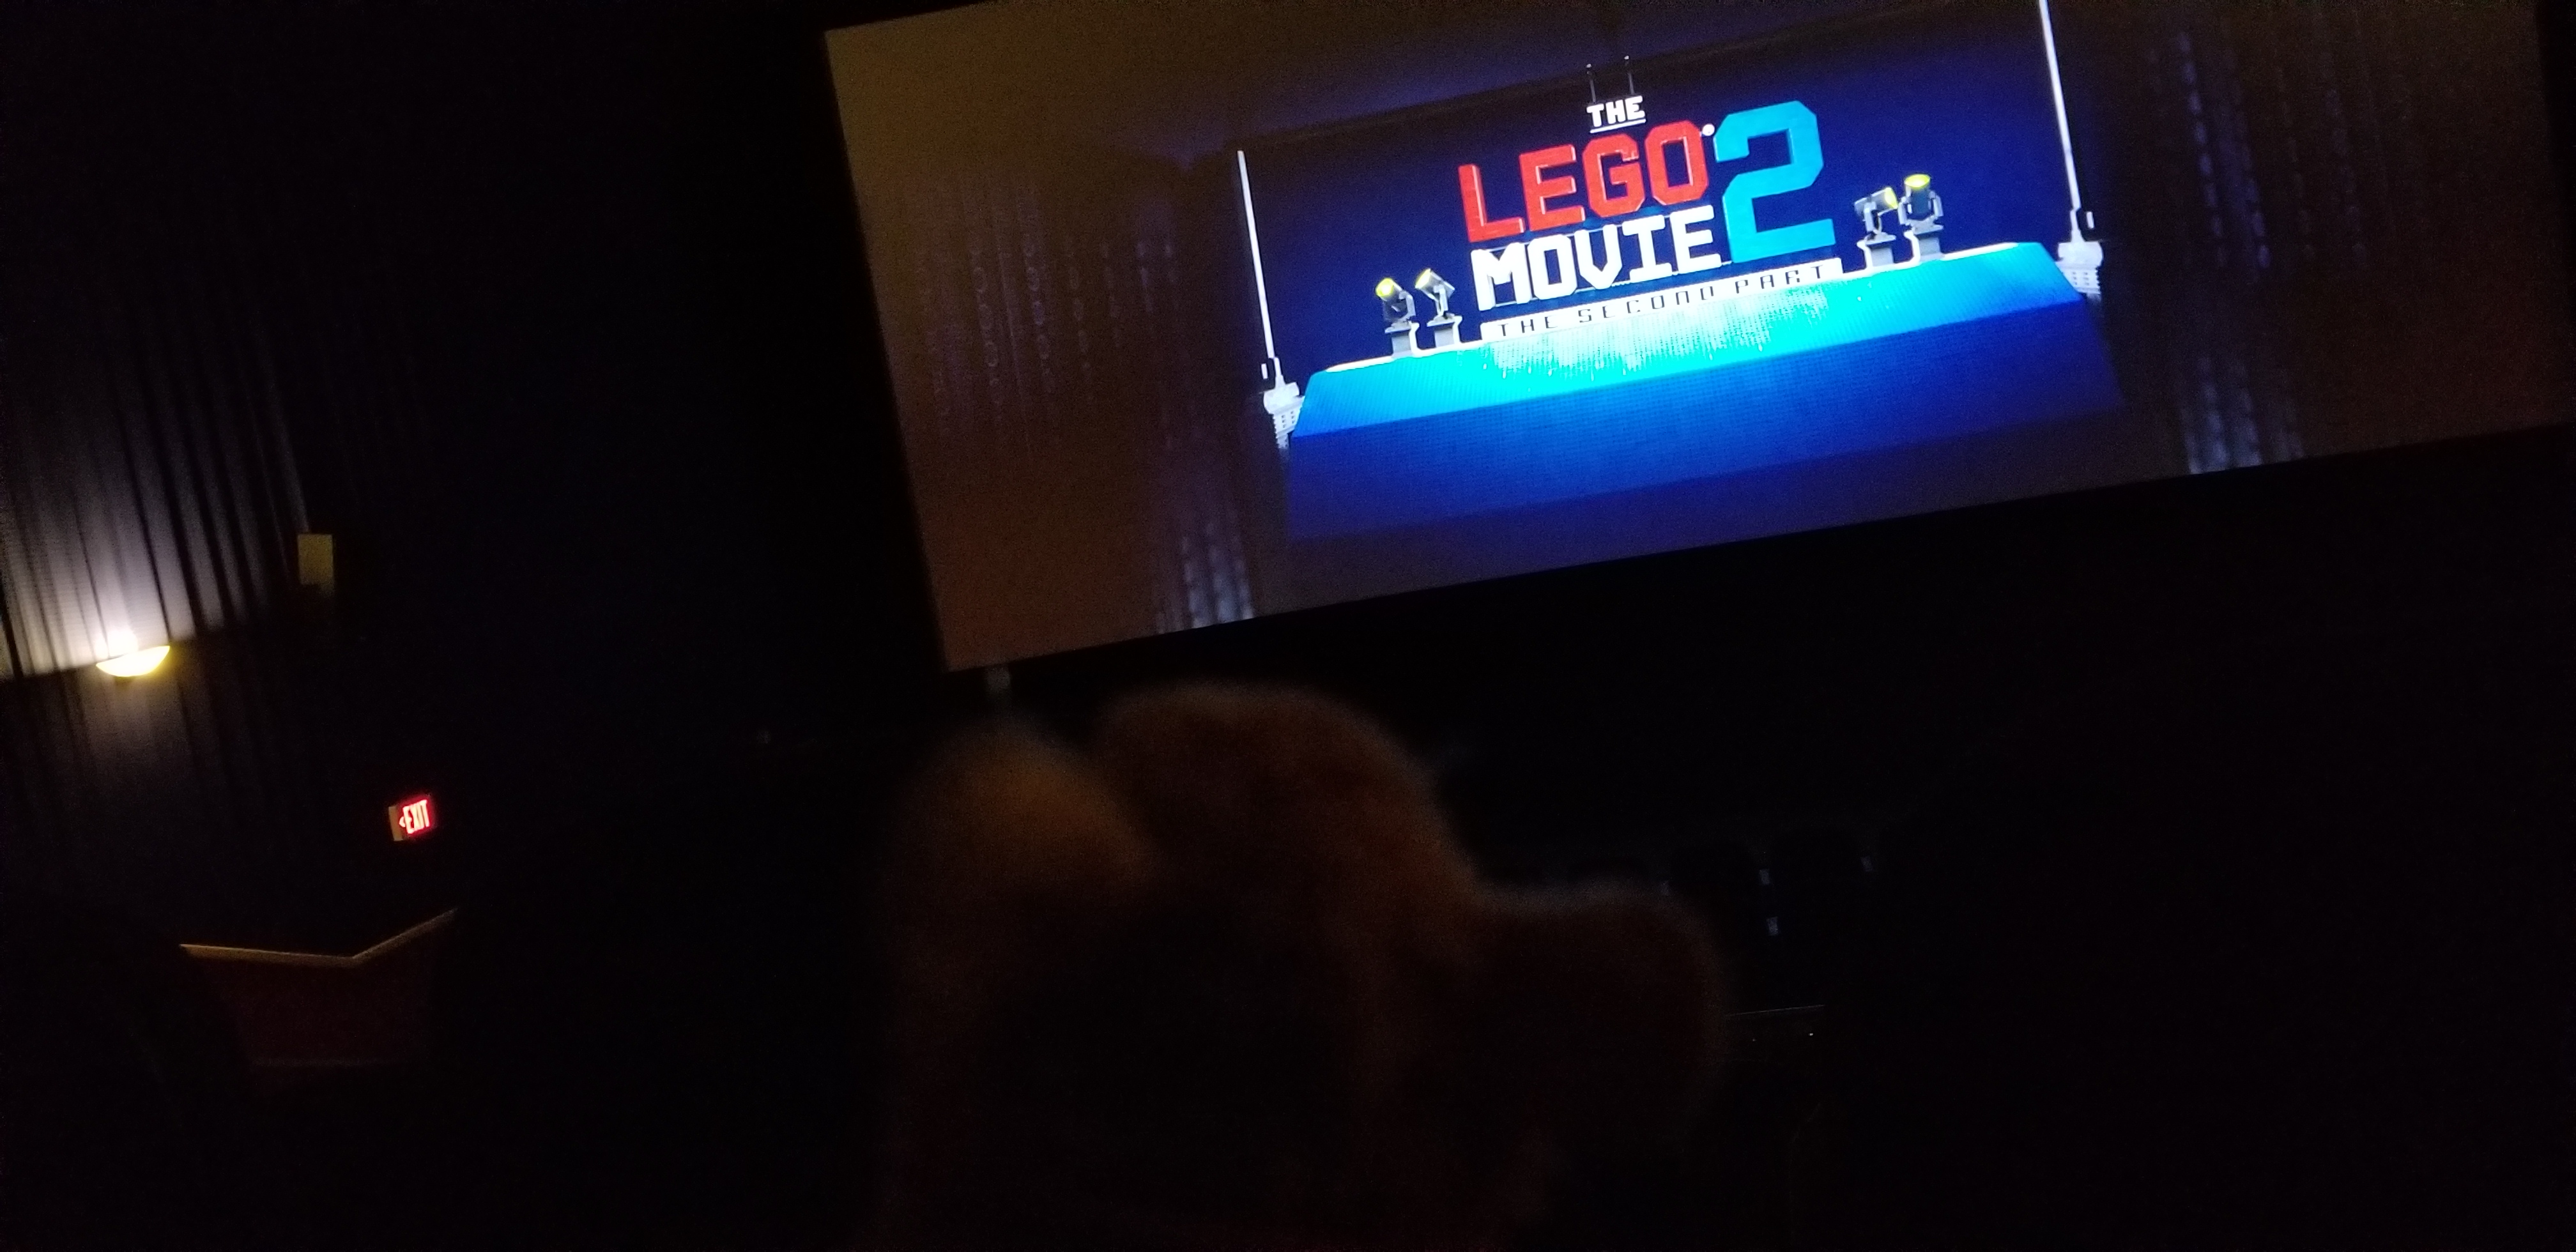 The Lego 2 movie begins